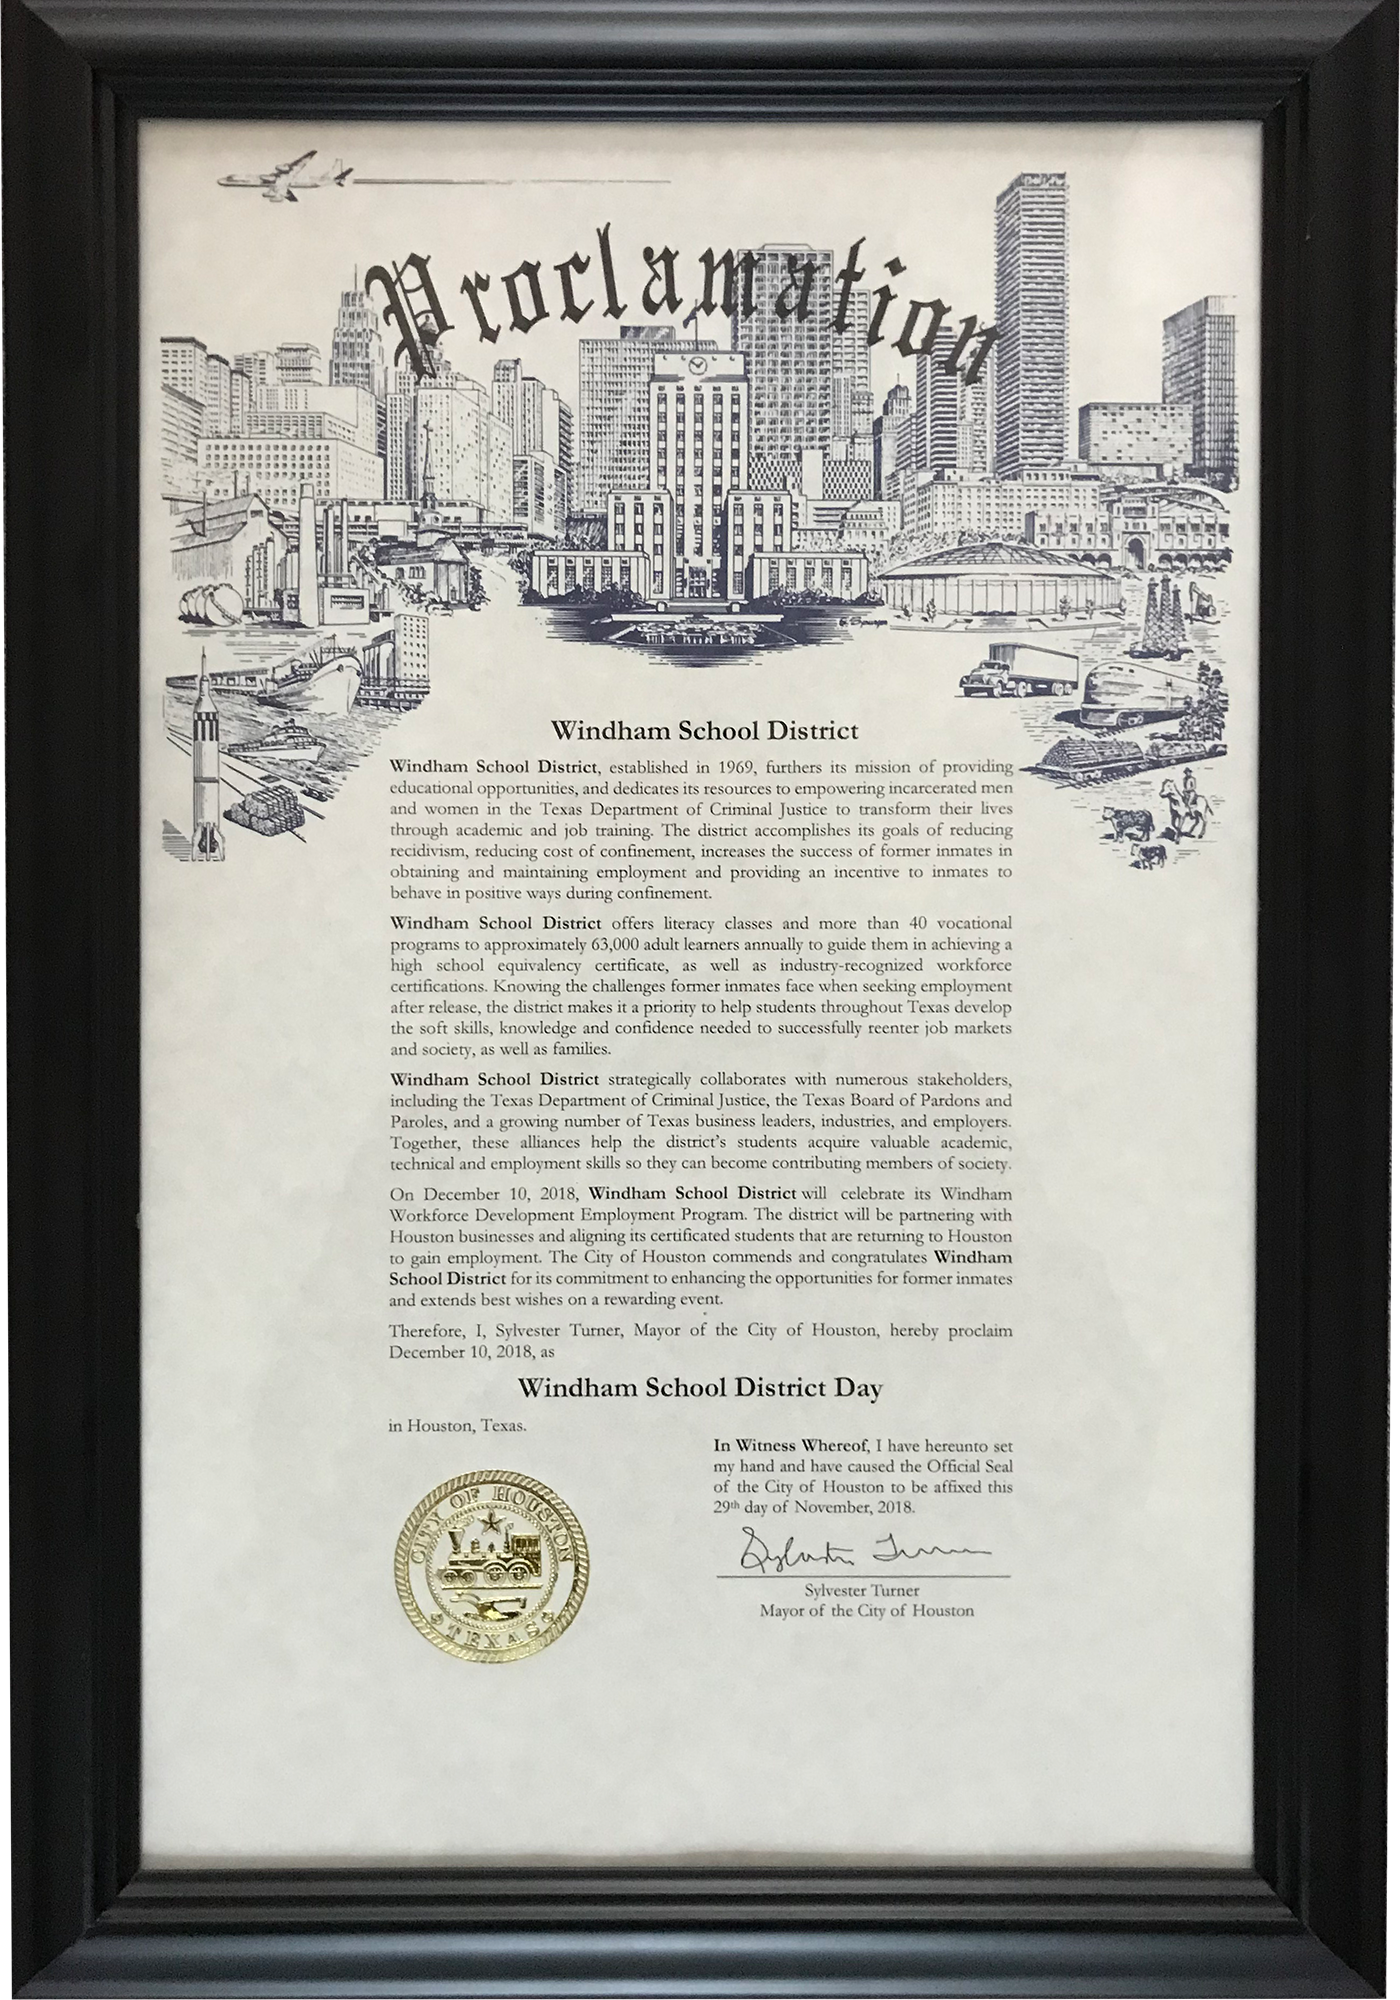 """The City of Houston commends the Windham School District for its commitment to enhancing the opportunities for former inmates and wishes the district continued success in its worthy endeavor."""